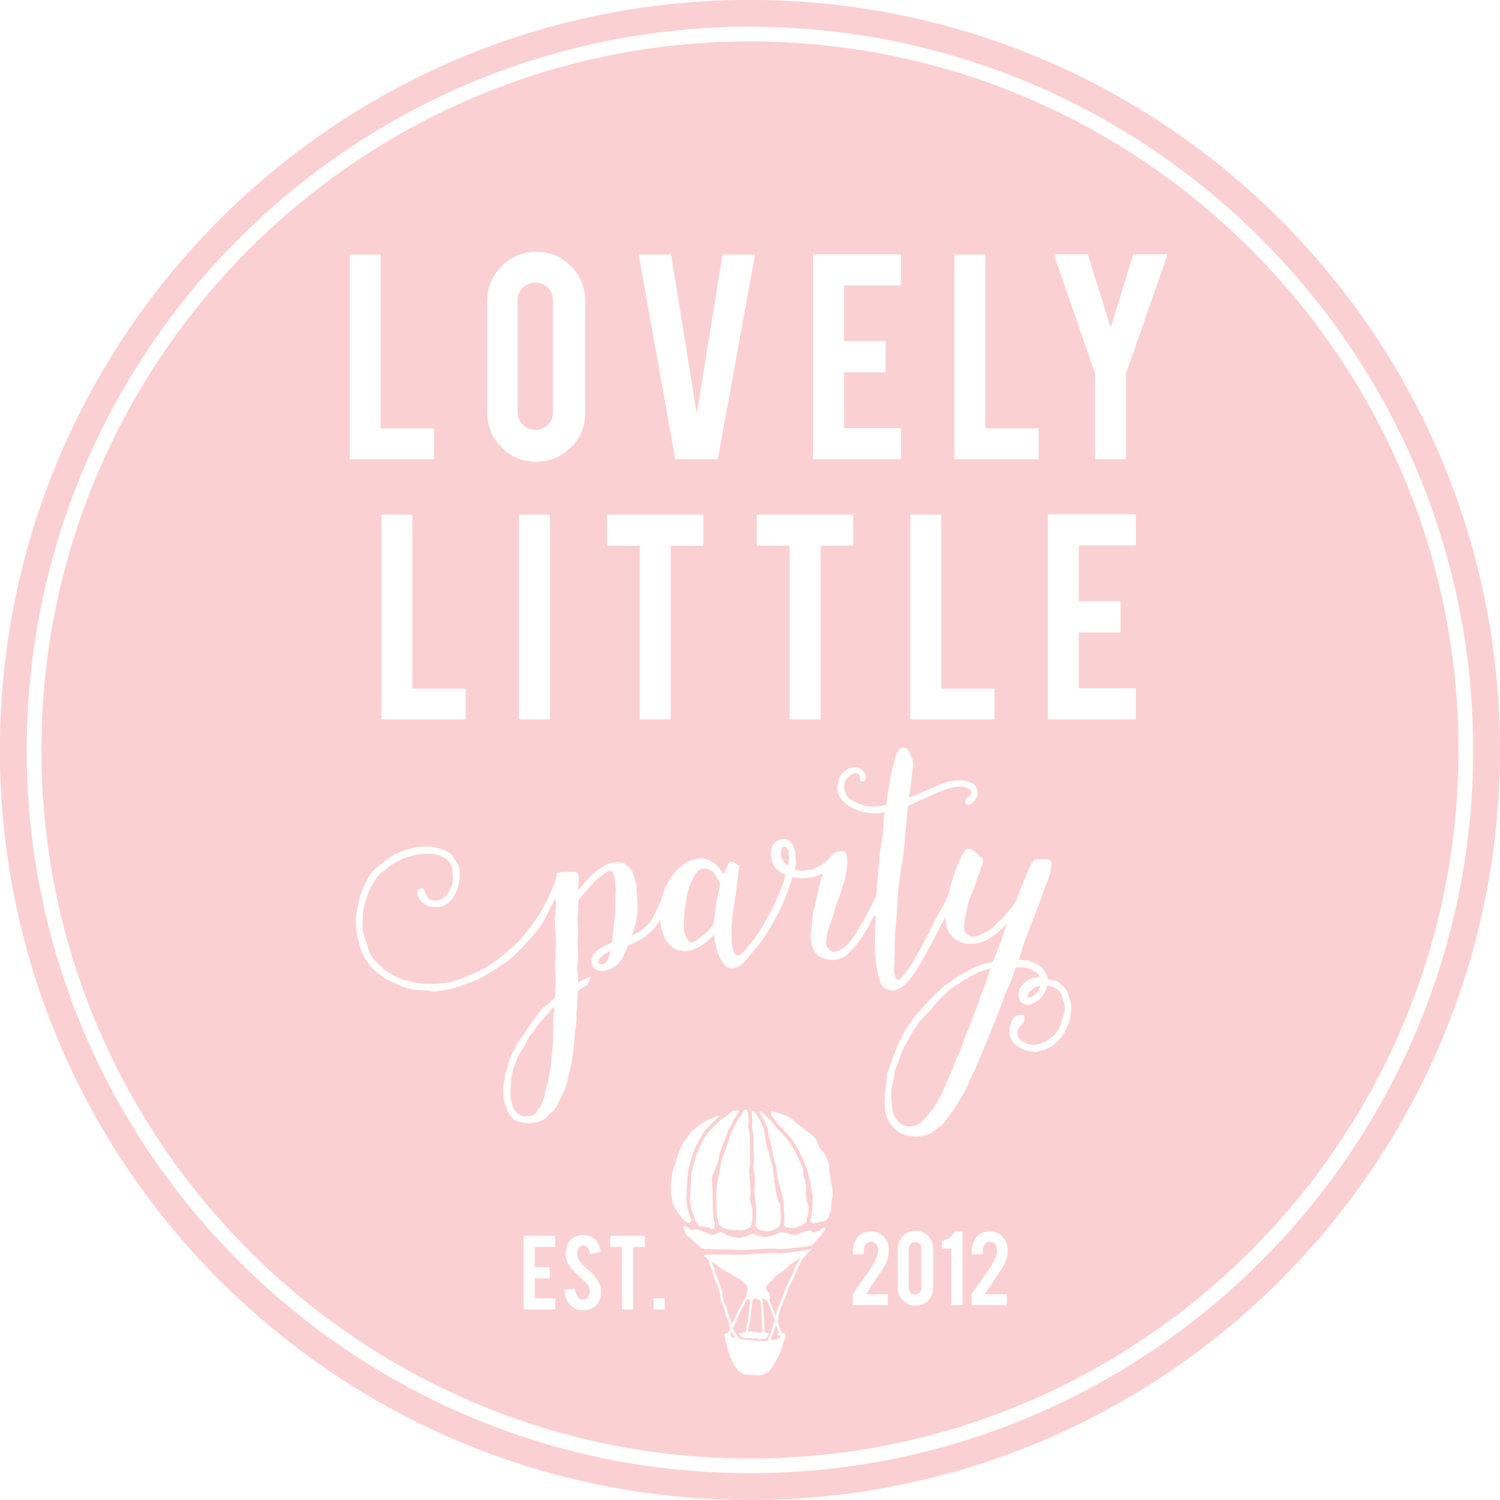 Lovely Little Party